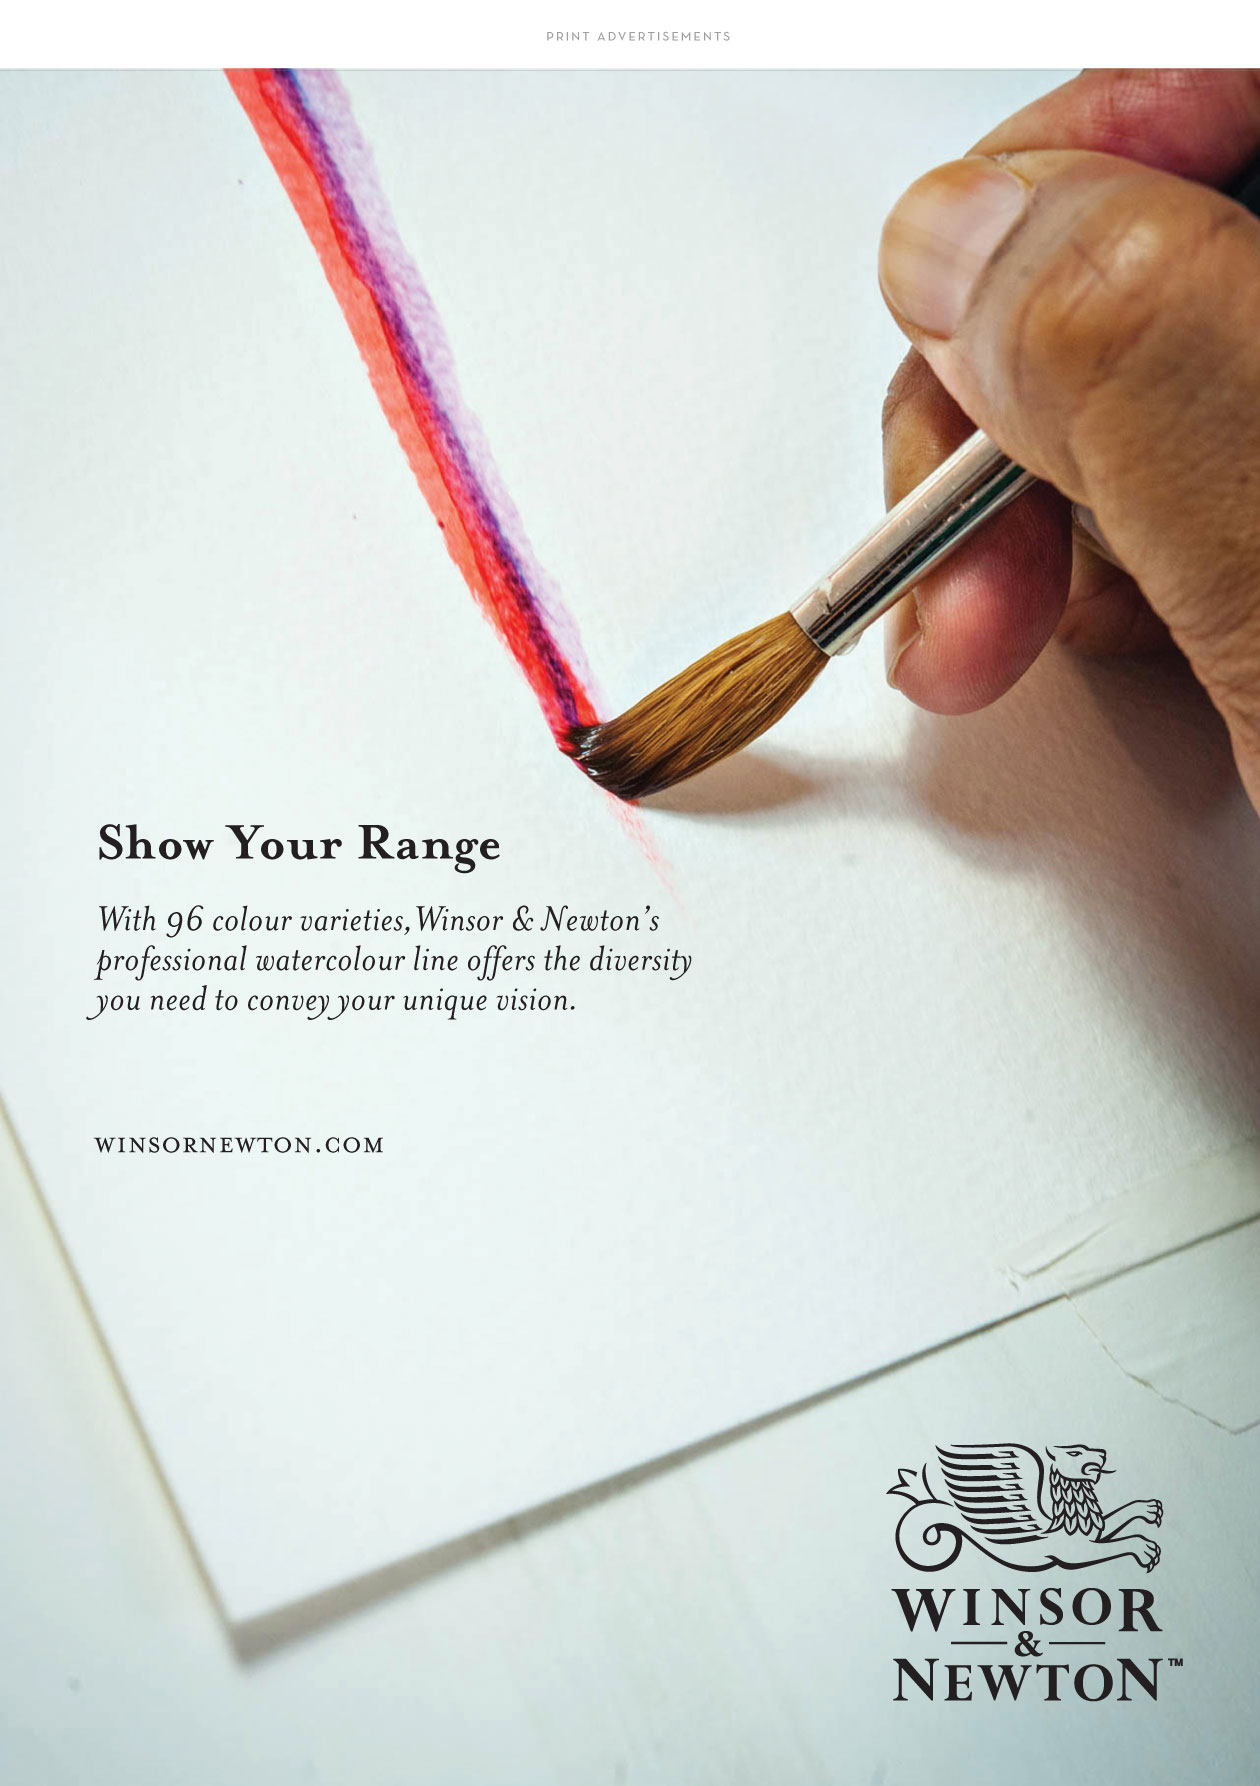 winsor and newton print advertisements by m studio